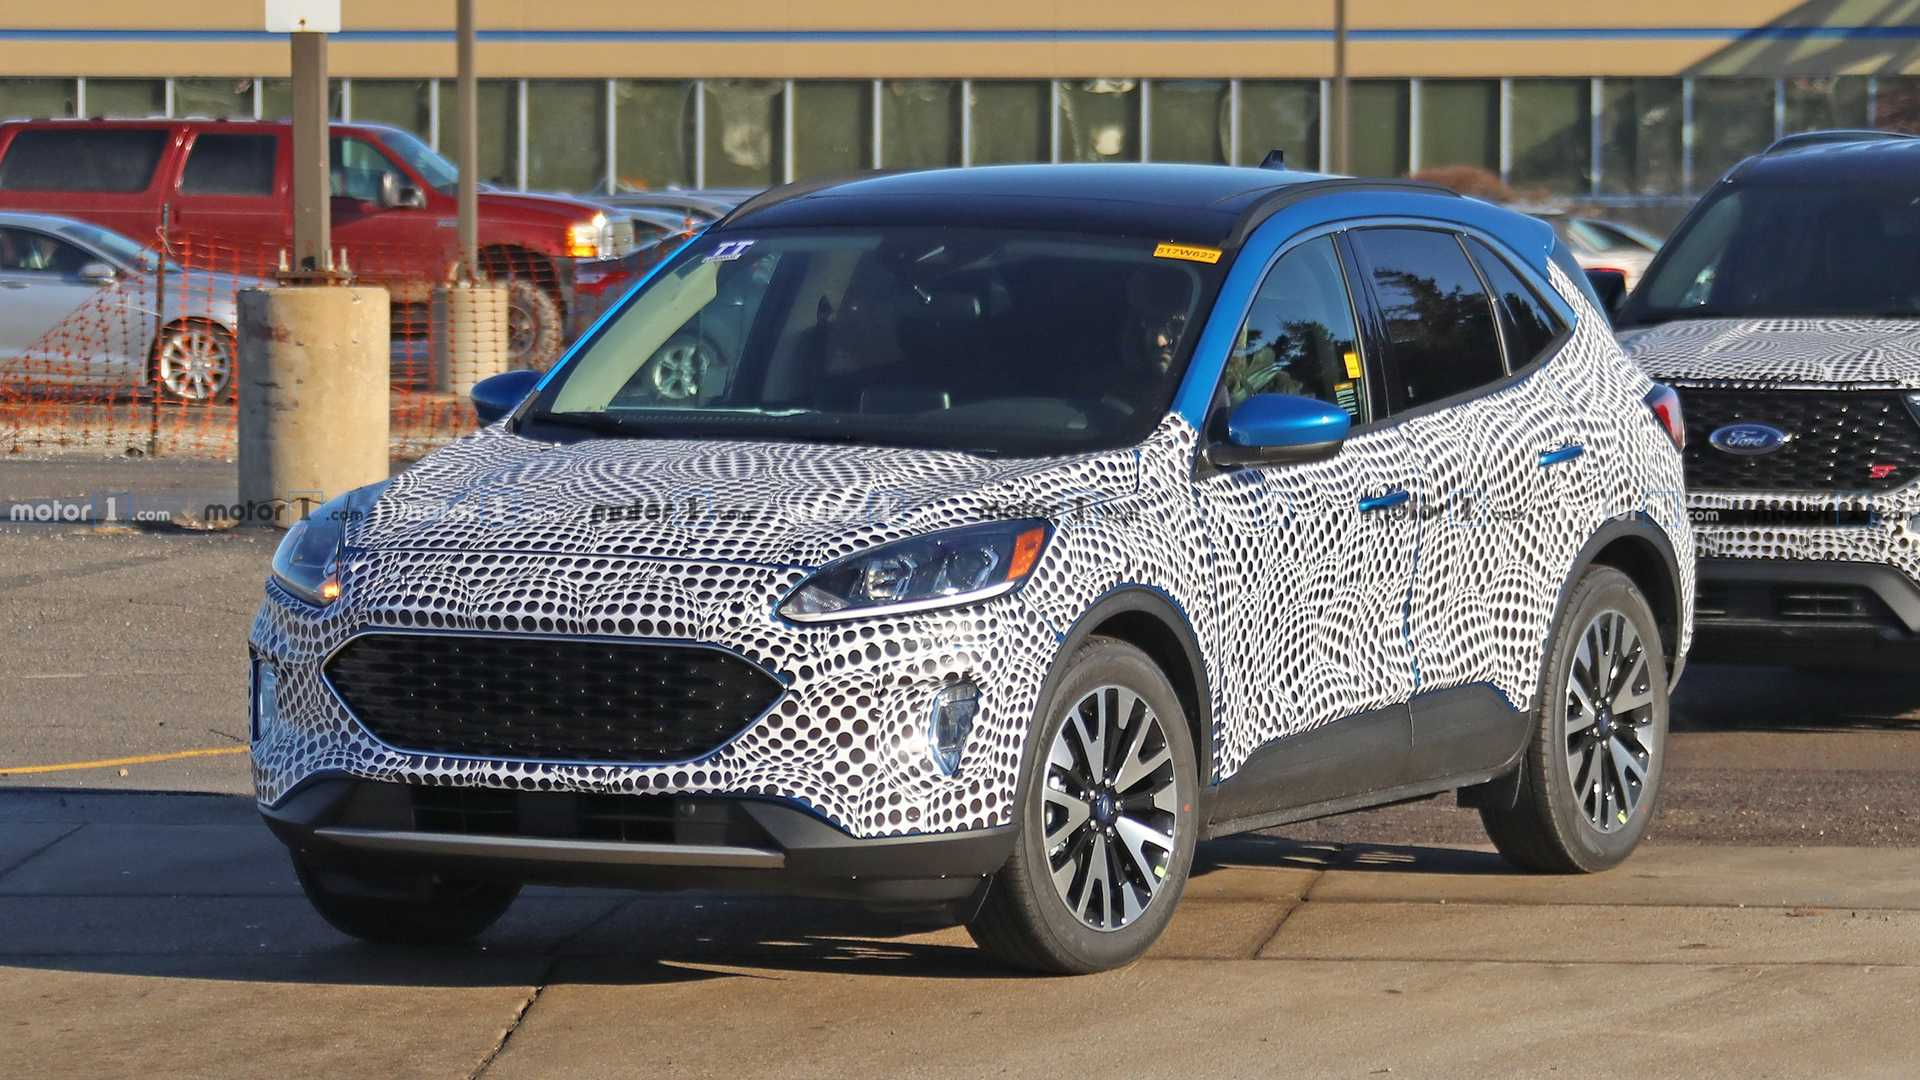 73 All New 2020 Ford Crossover Price Design And Review